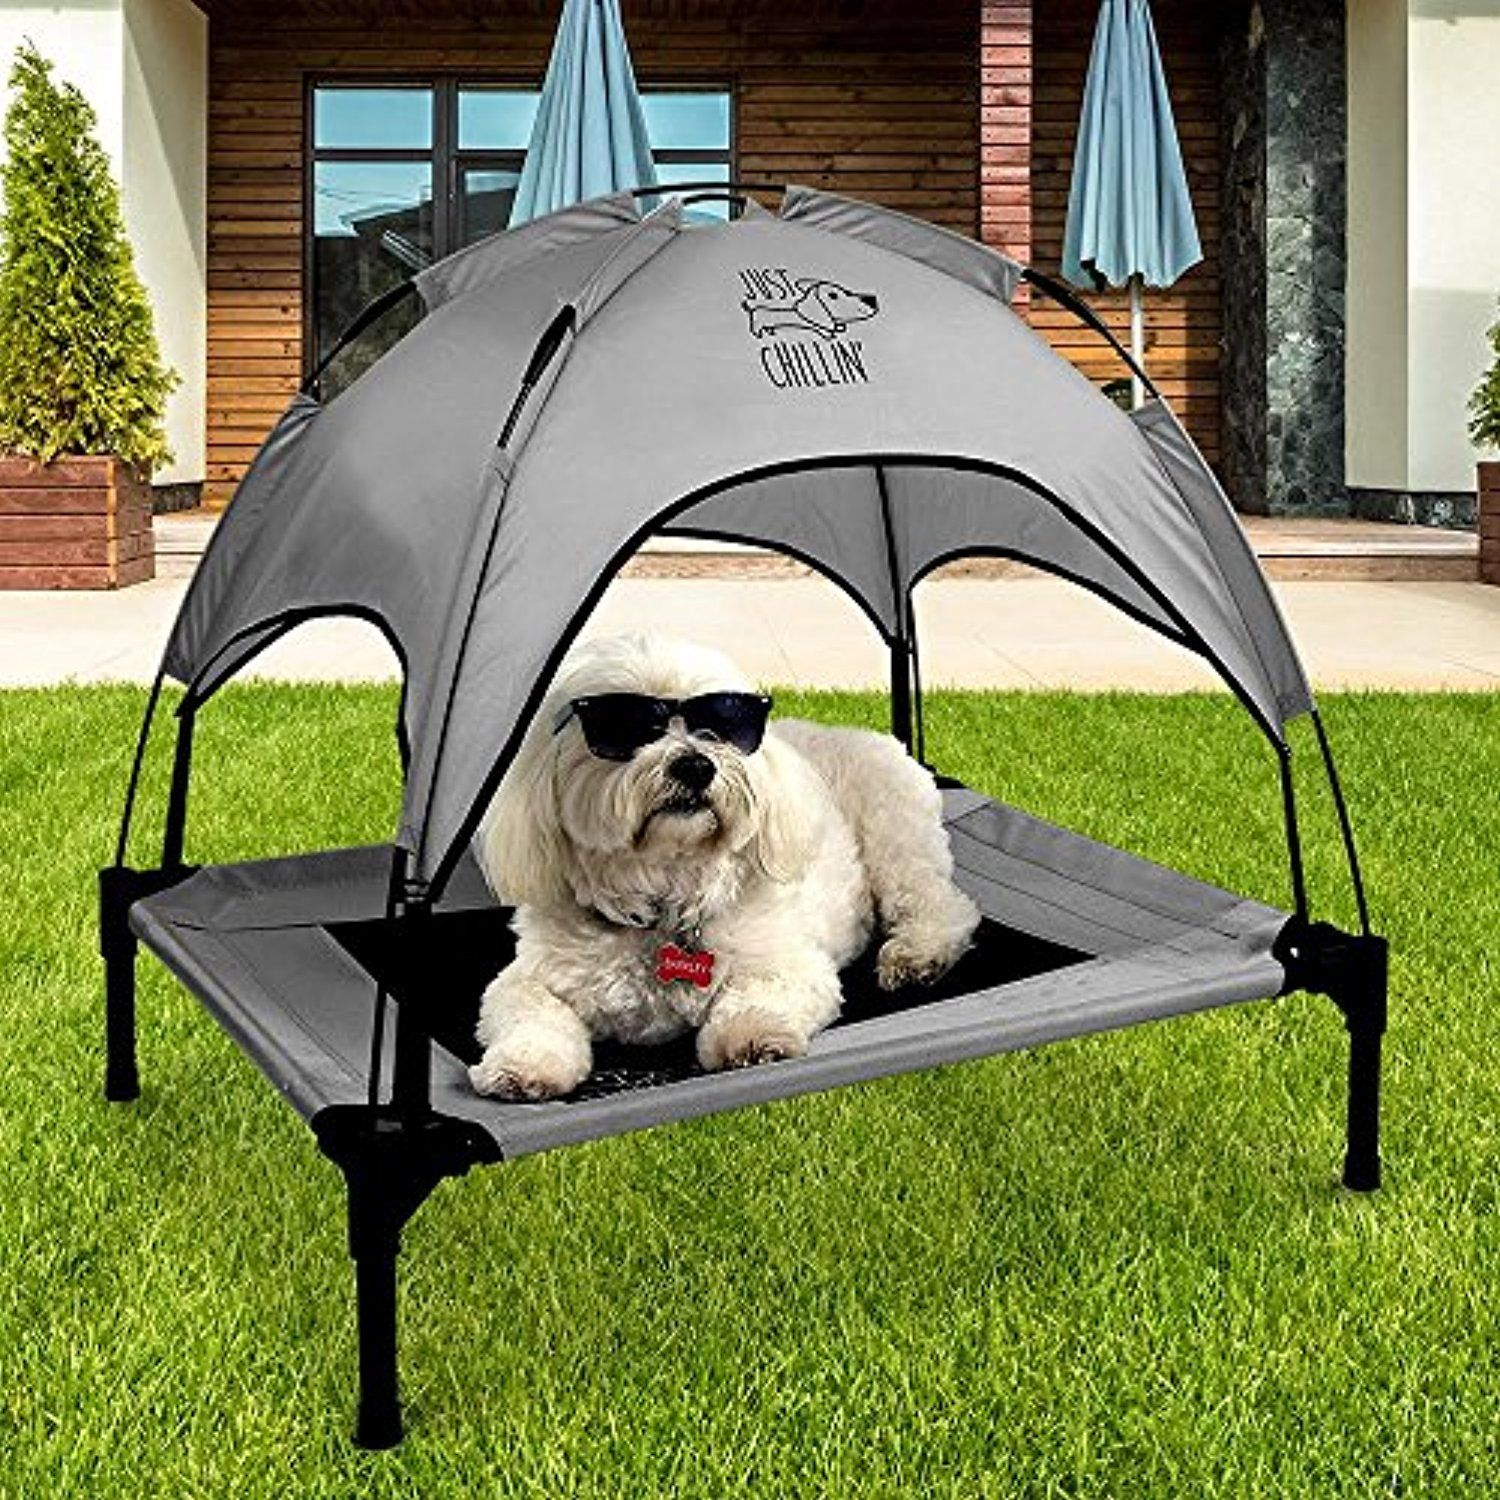 Floppy Dawg Just Chillin Dog Cot With Canopy For Small And Medium Dogs Elevated Pet Bed For Indoors And Outdoors Is Outdoor Dog Bed Dog Cots Elevated Dog Bed